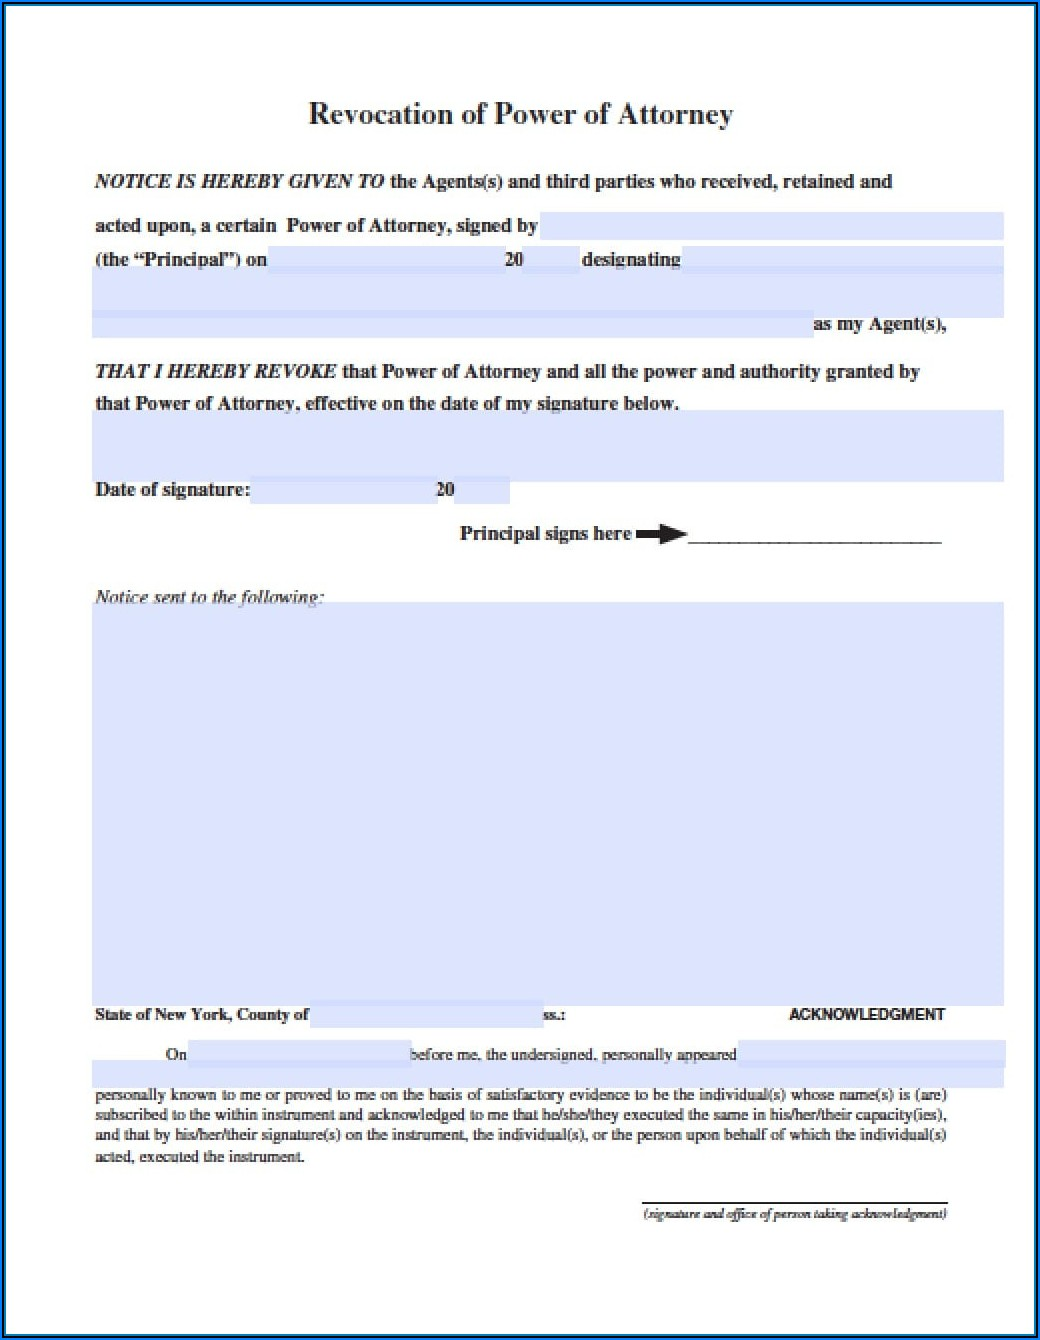 Revocation Of Power Of Attorney Form New York